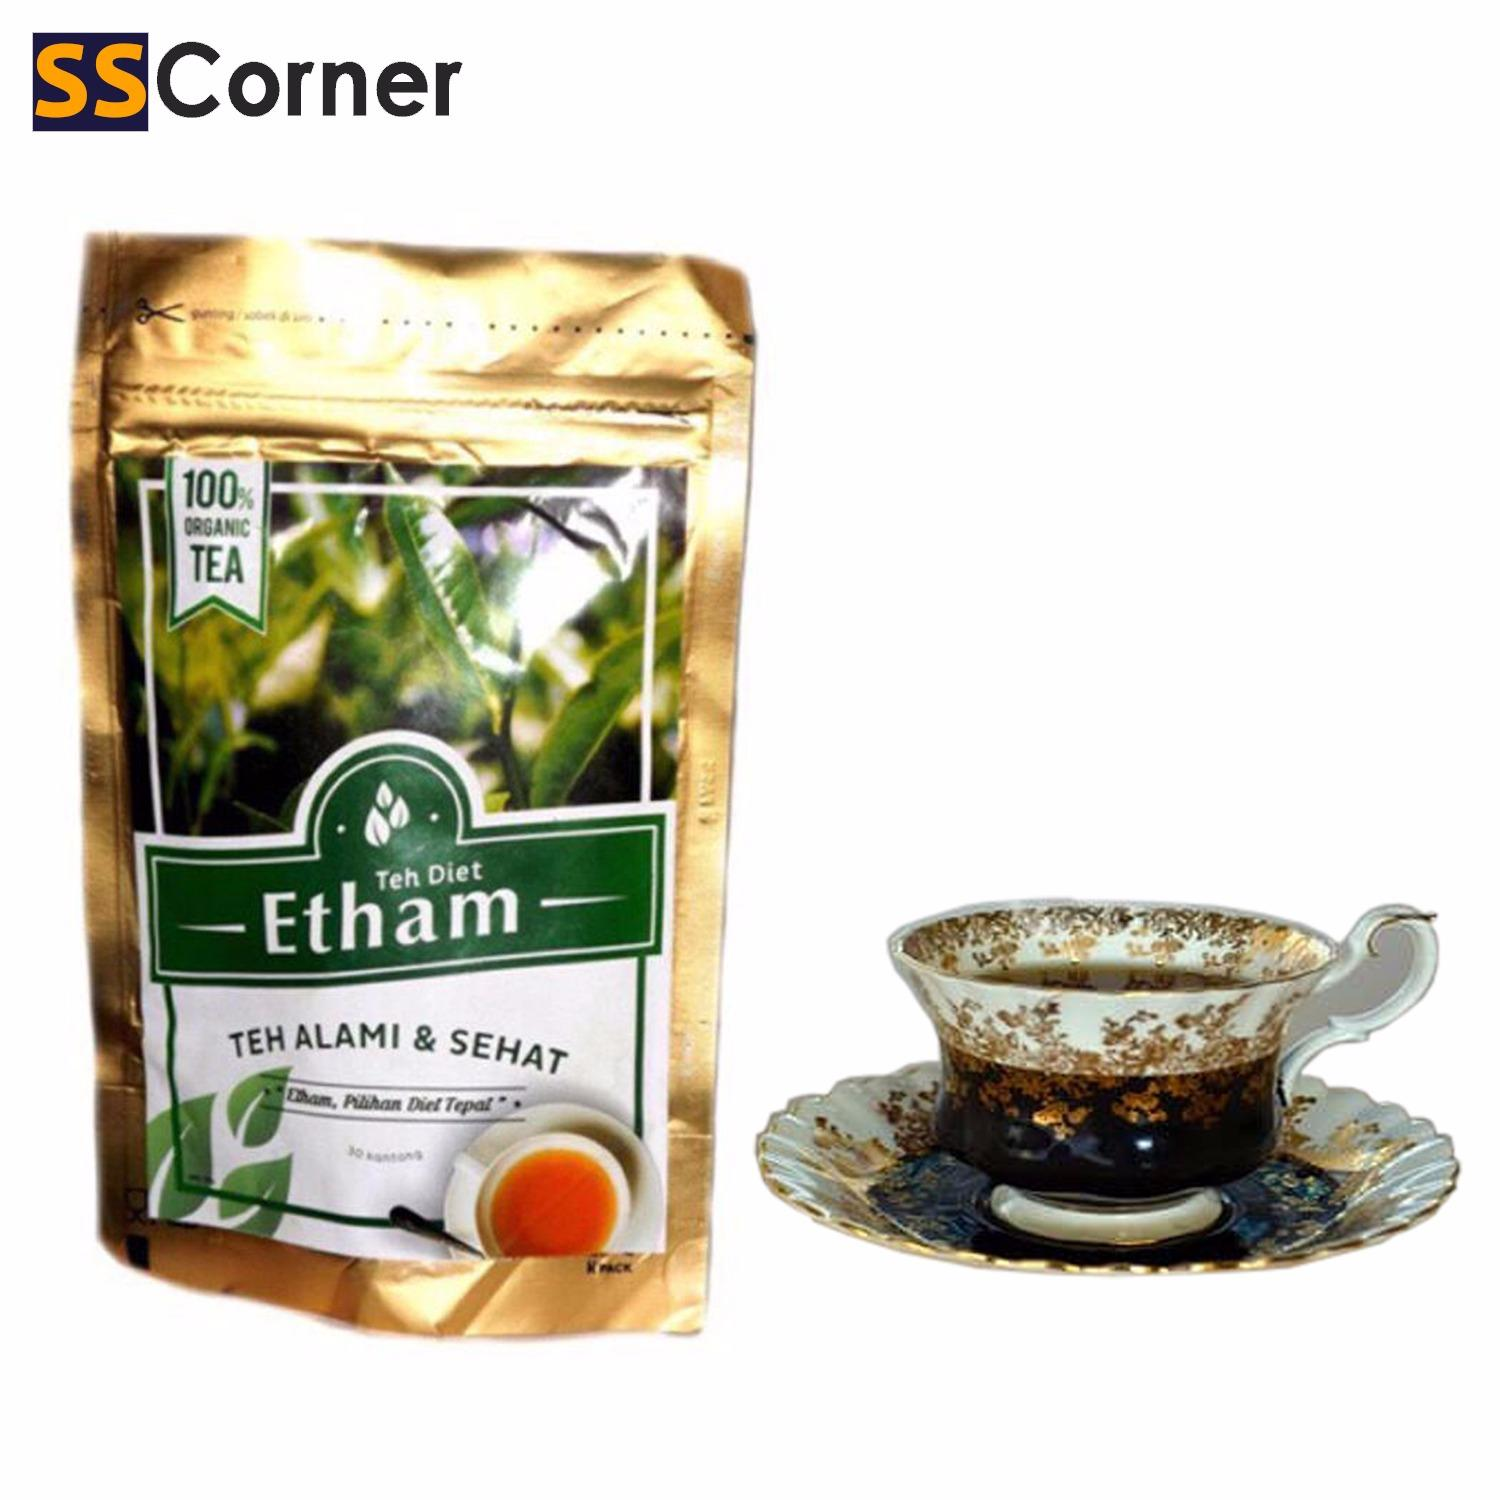 SS Corner Teh diet Etham , Teh Herbal